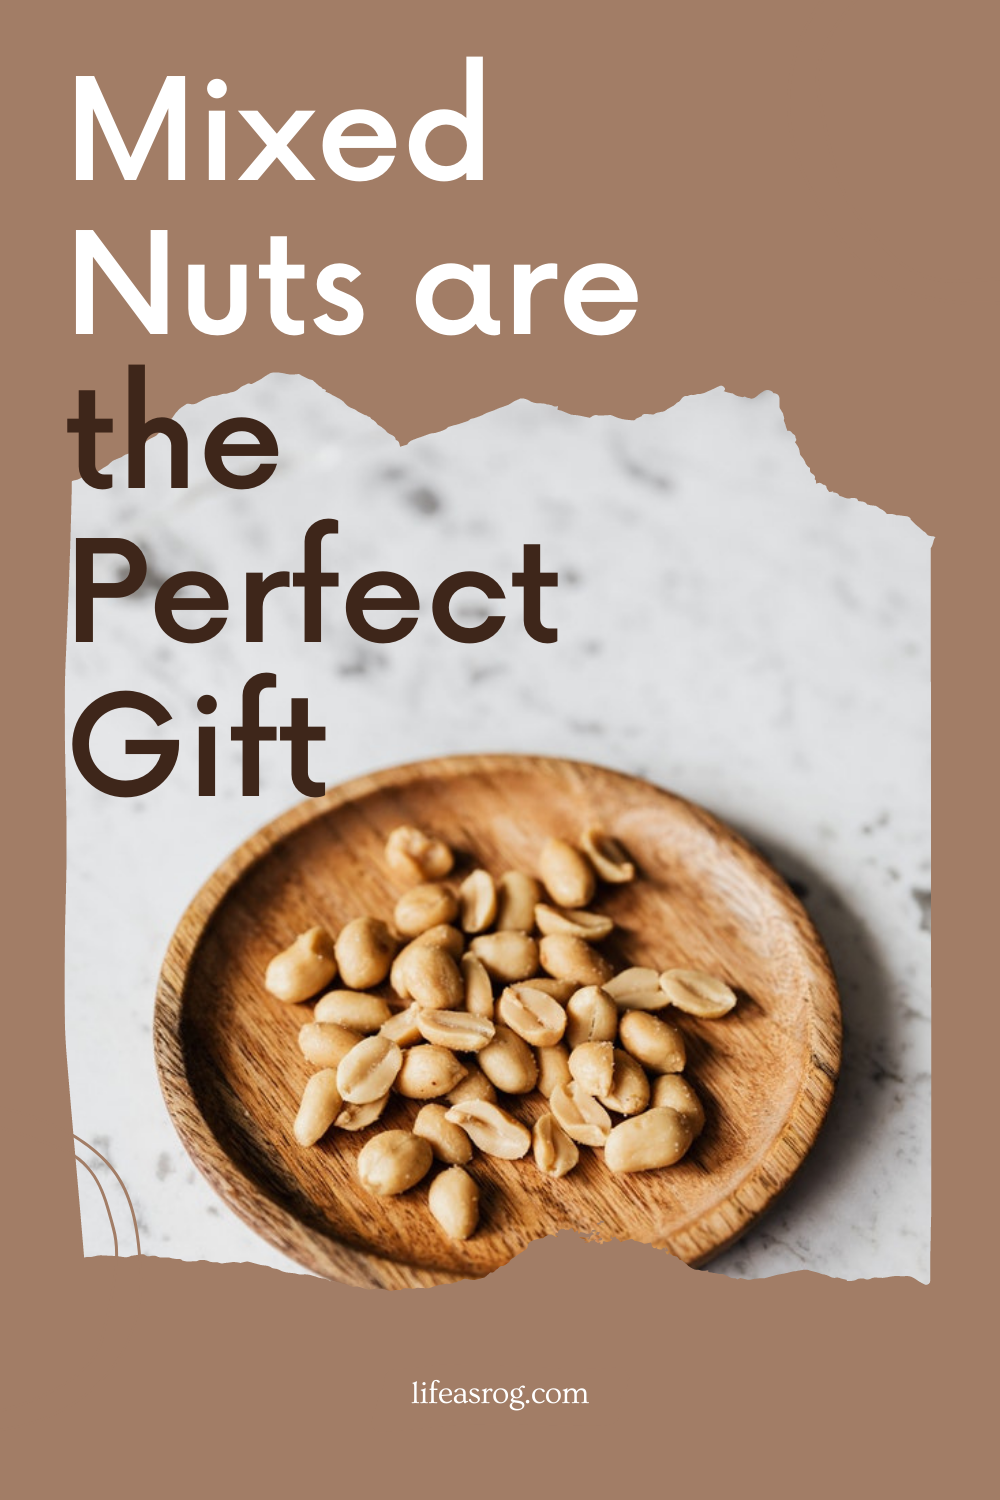 Mixed Nuts are the Perfect Gift